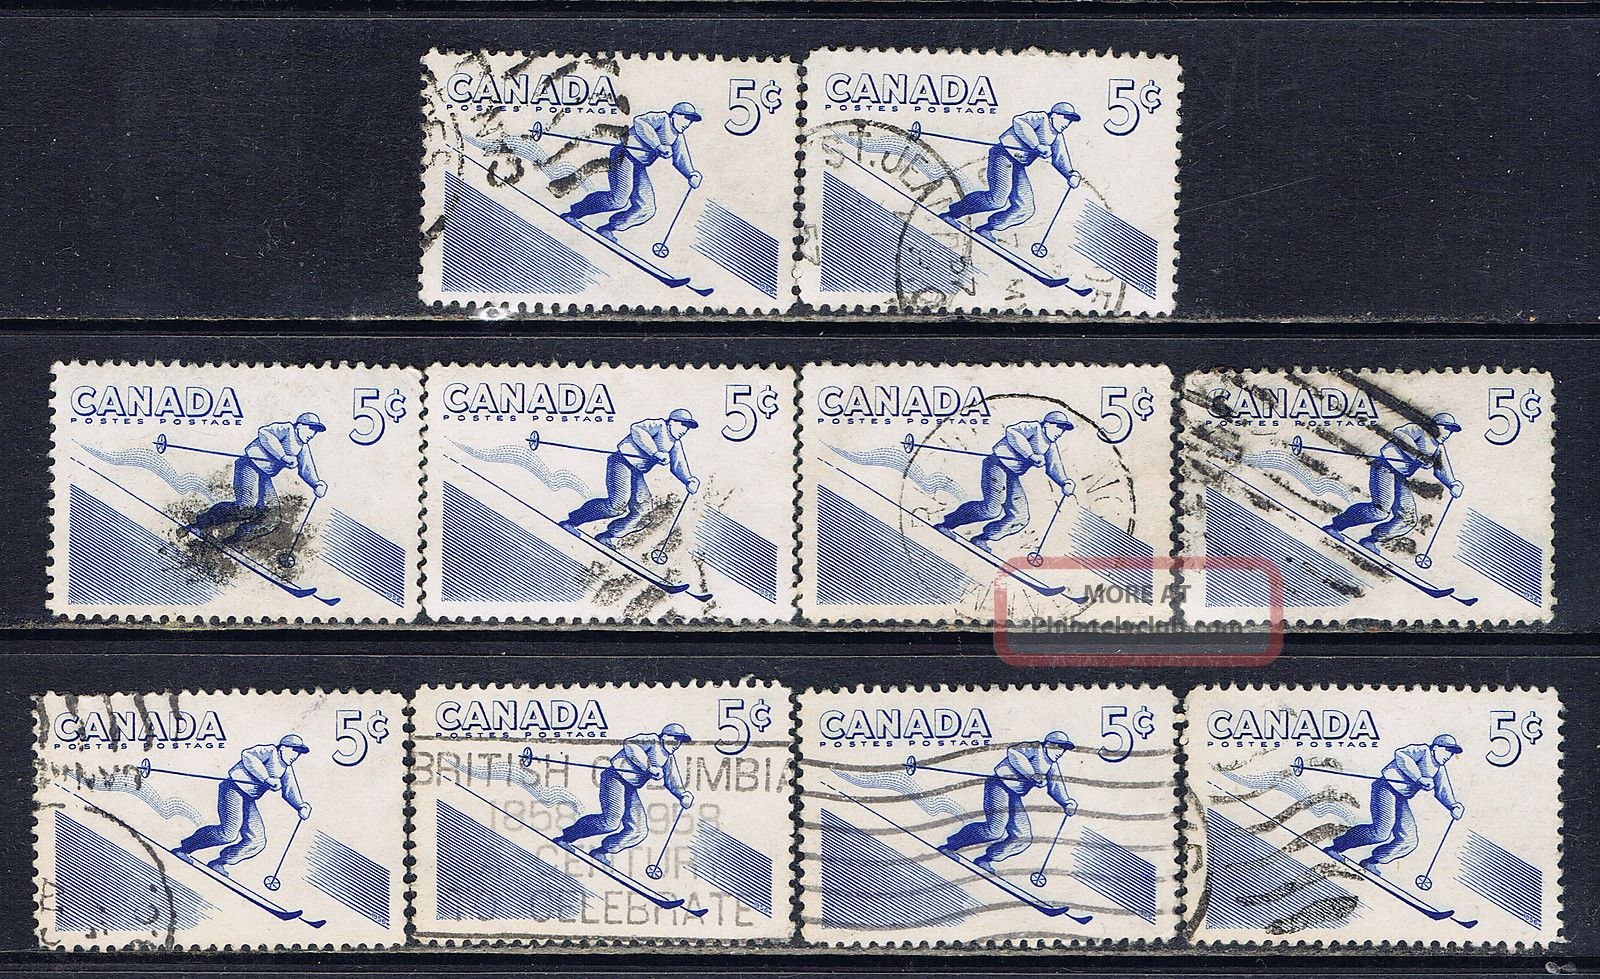 Canada 368 (9) 1957 5 Cent Blue Recreation Sports - Skiing 10 Canada photo